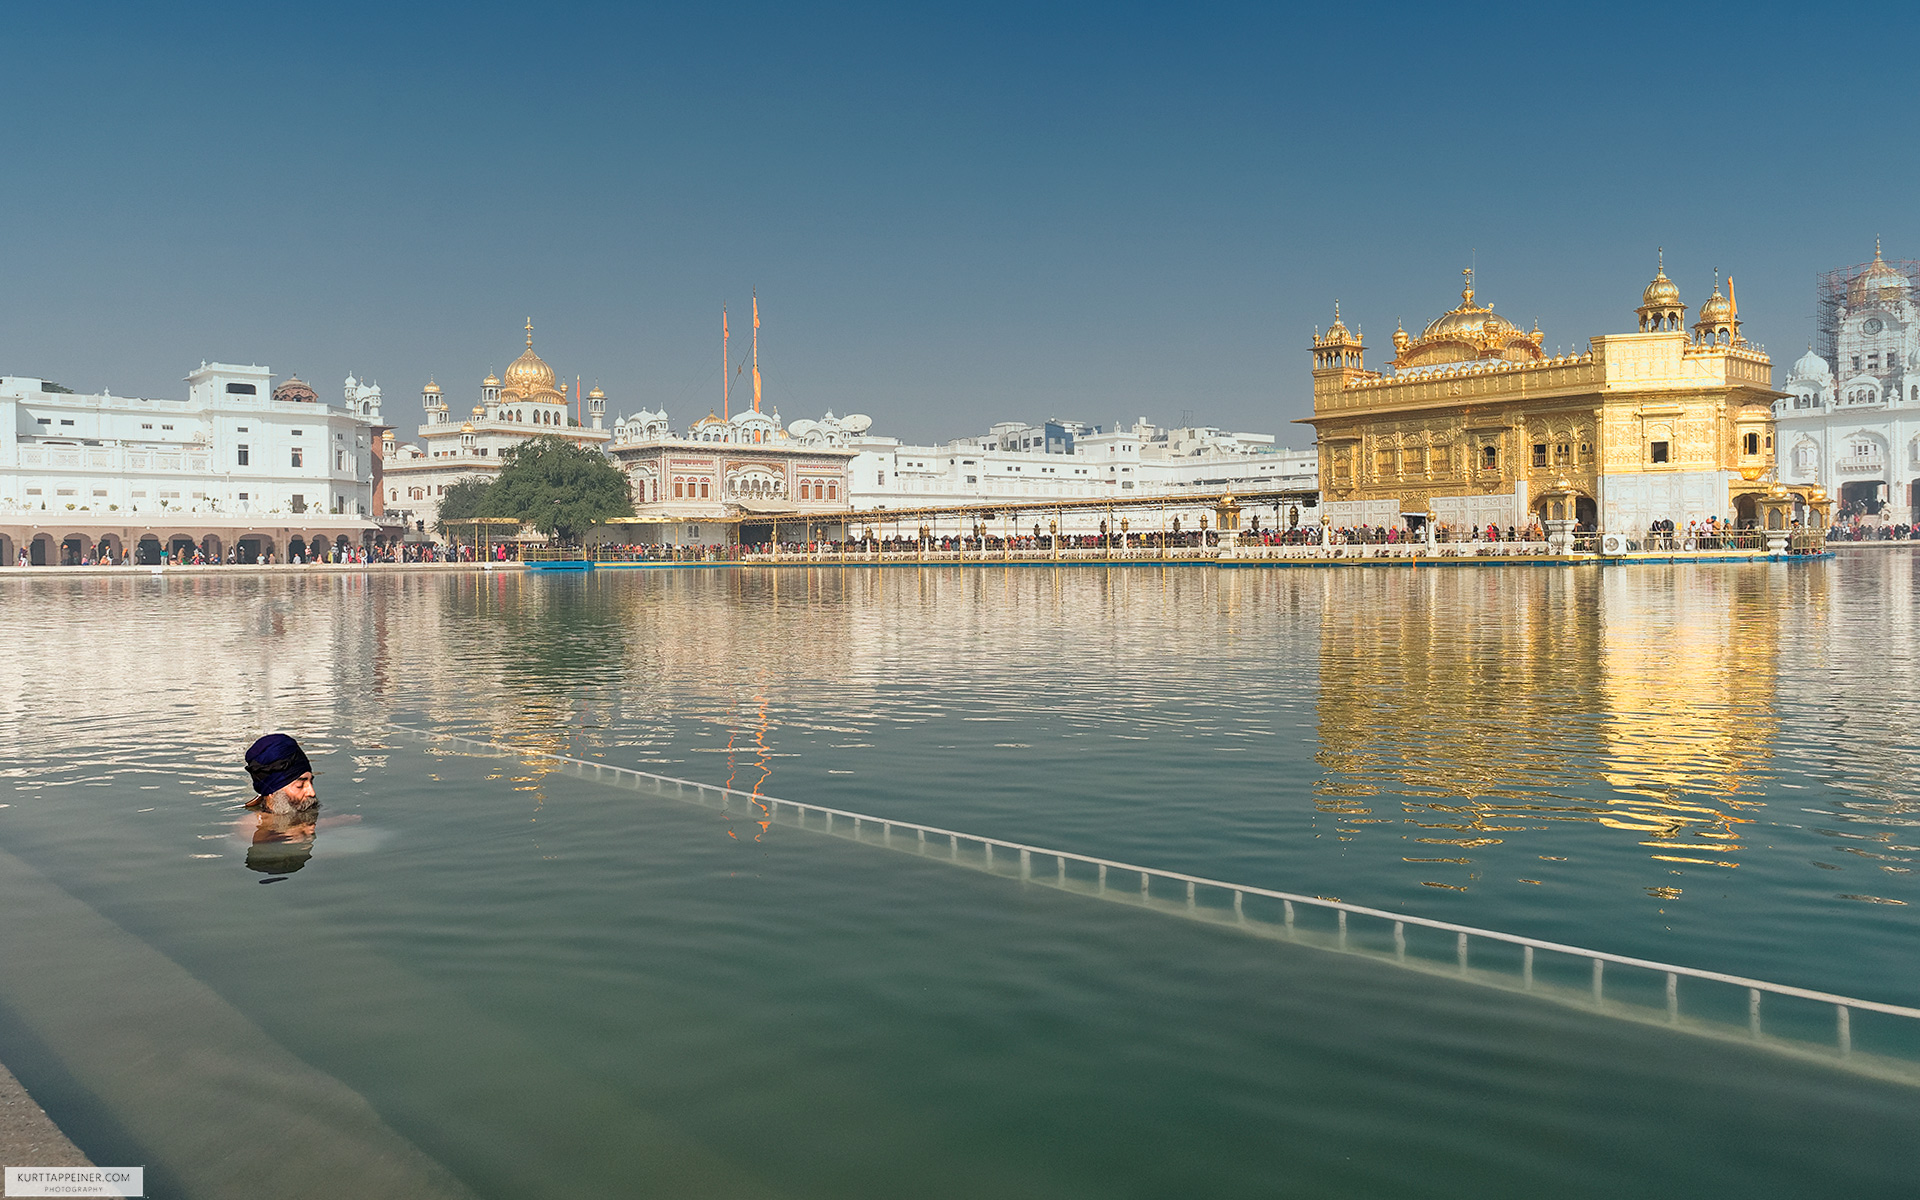 A Sikh man bathing in the pond of the Golden Temple of Amritsar